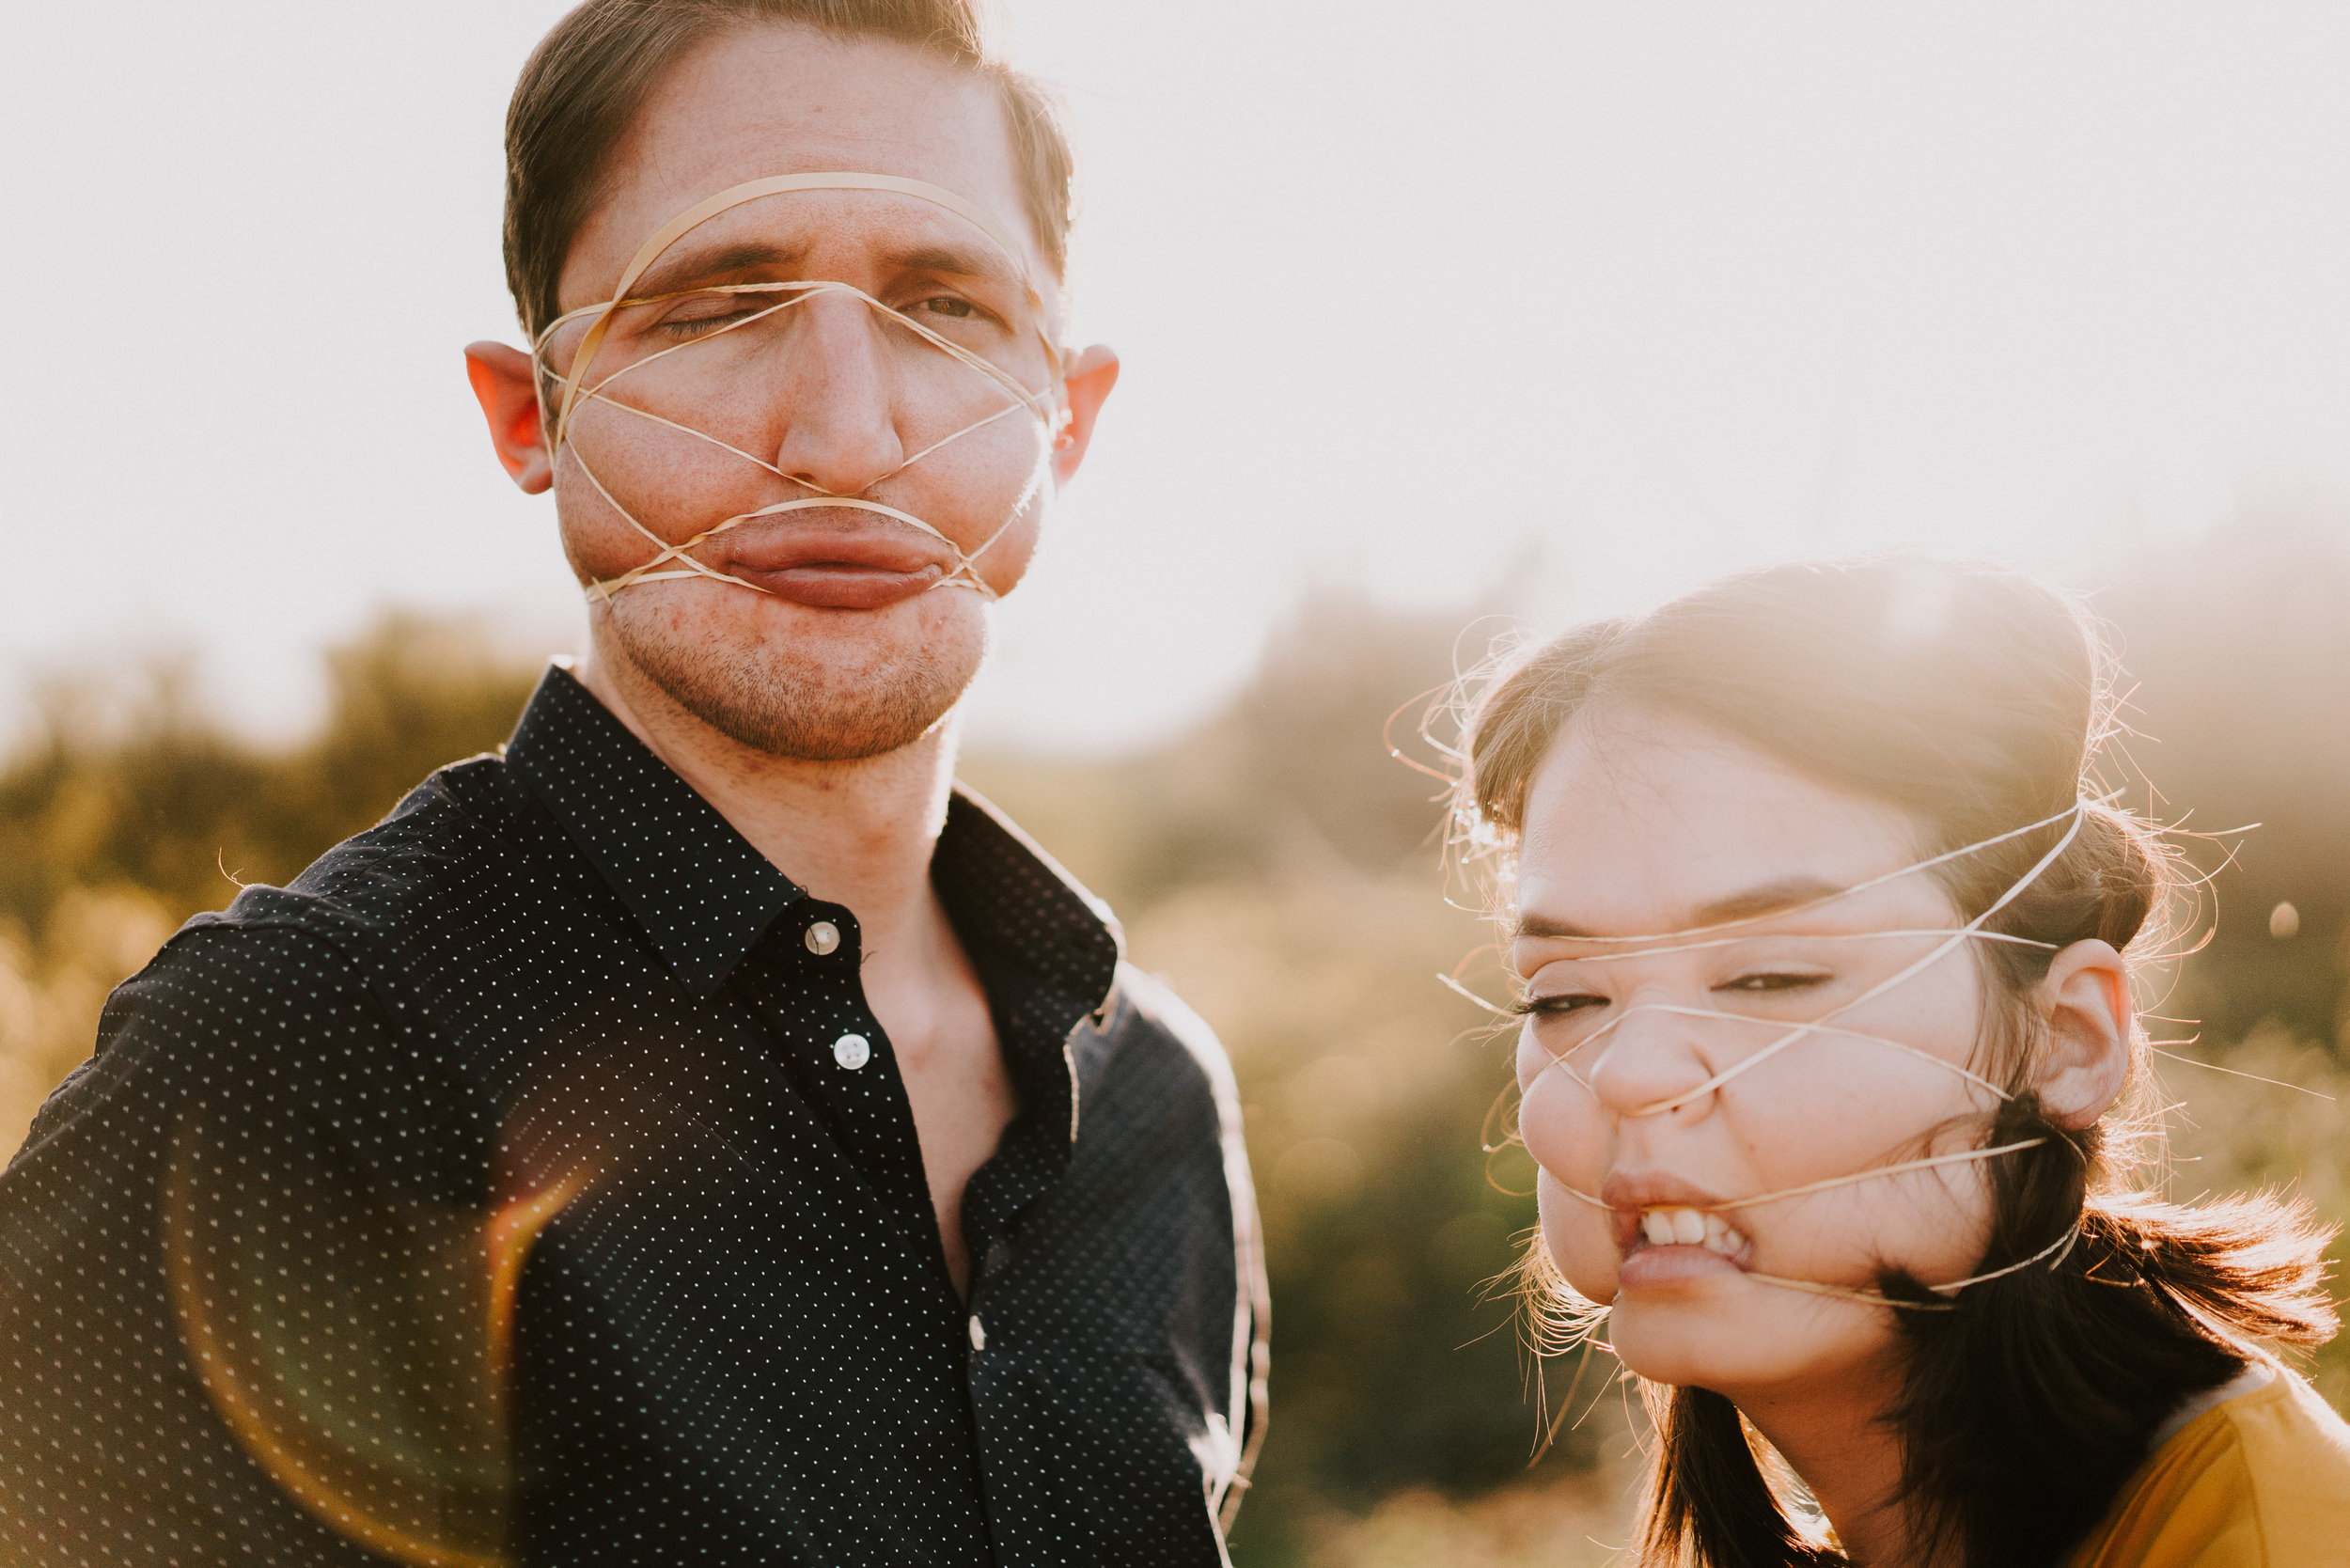 John and Thalia Rubber Band Face - Jake and Kim Photography 2018 28.jpg